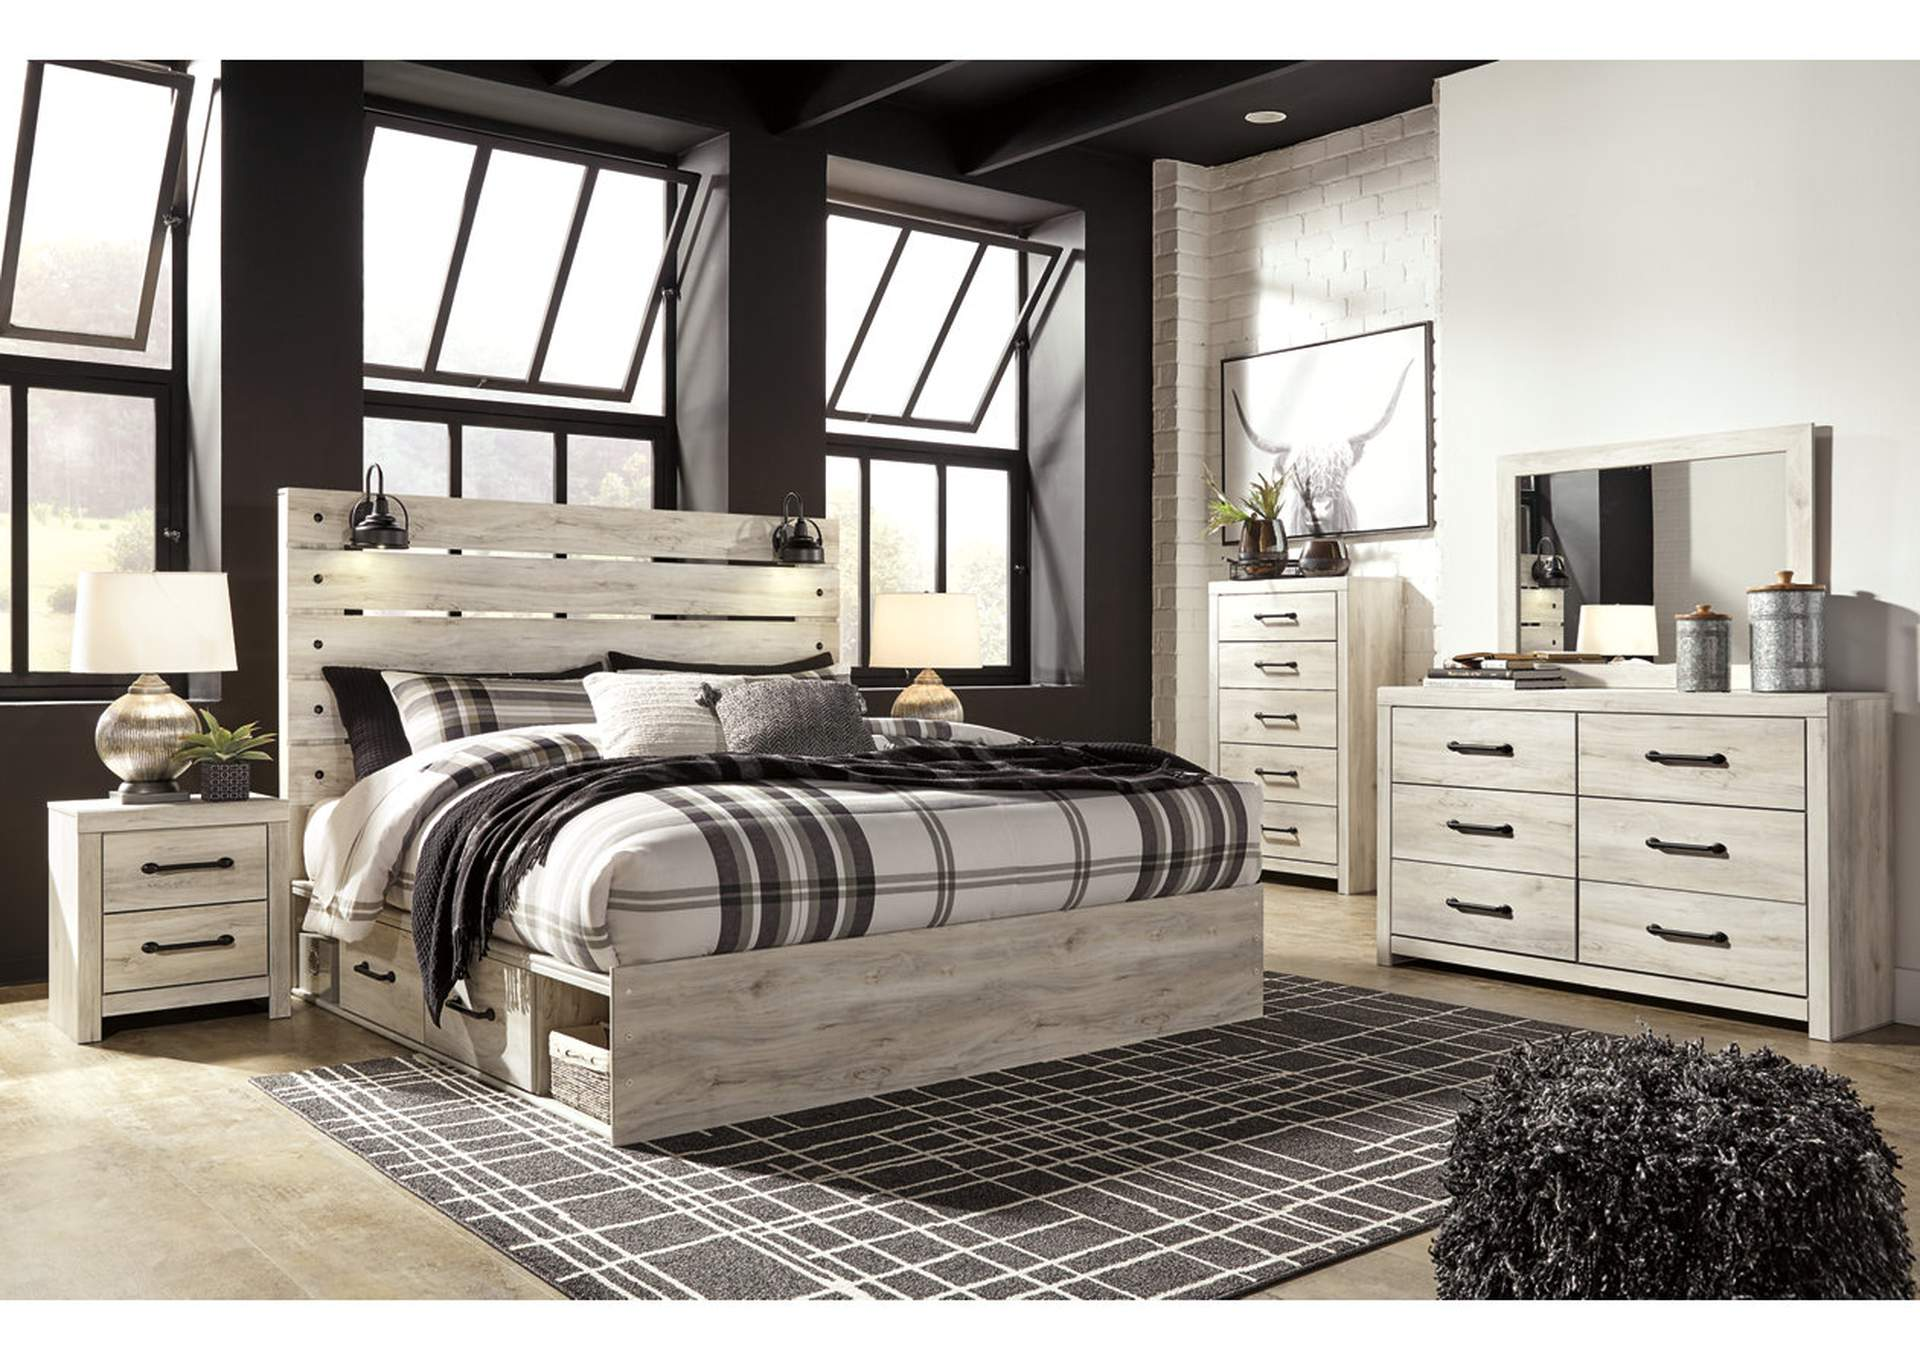 Cambeck King Panel Bed with 4 Storage Drawers,Signature Design By Ashley